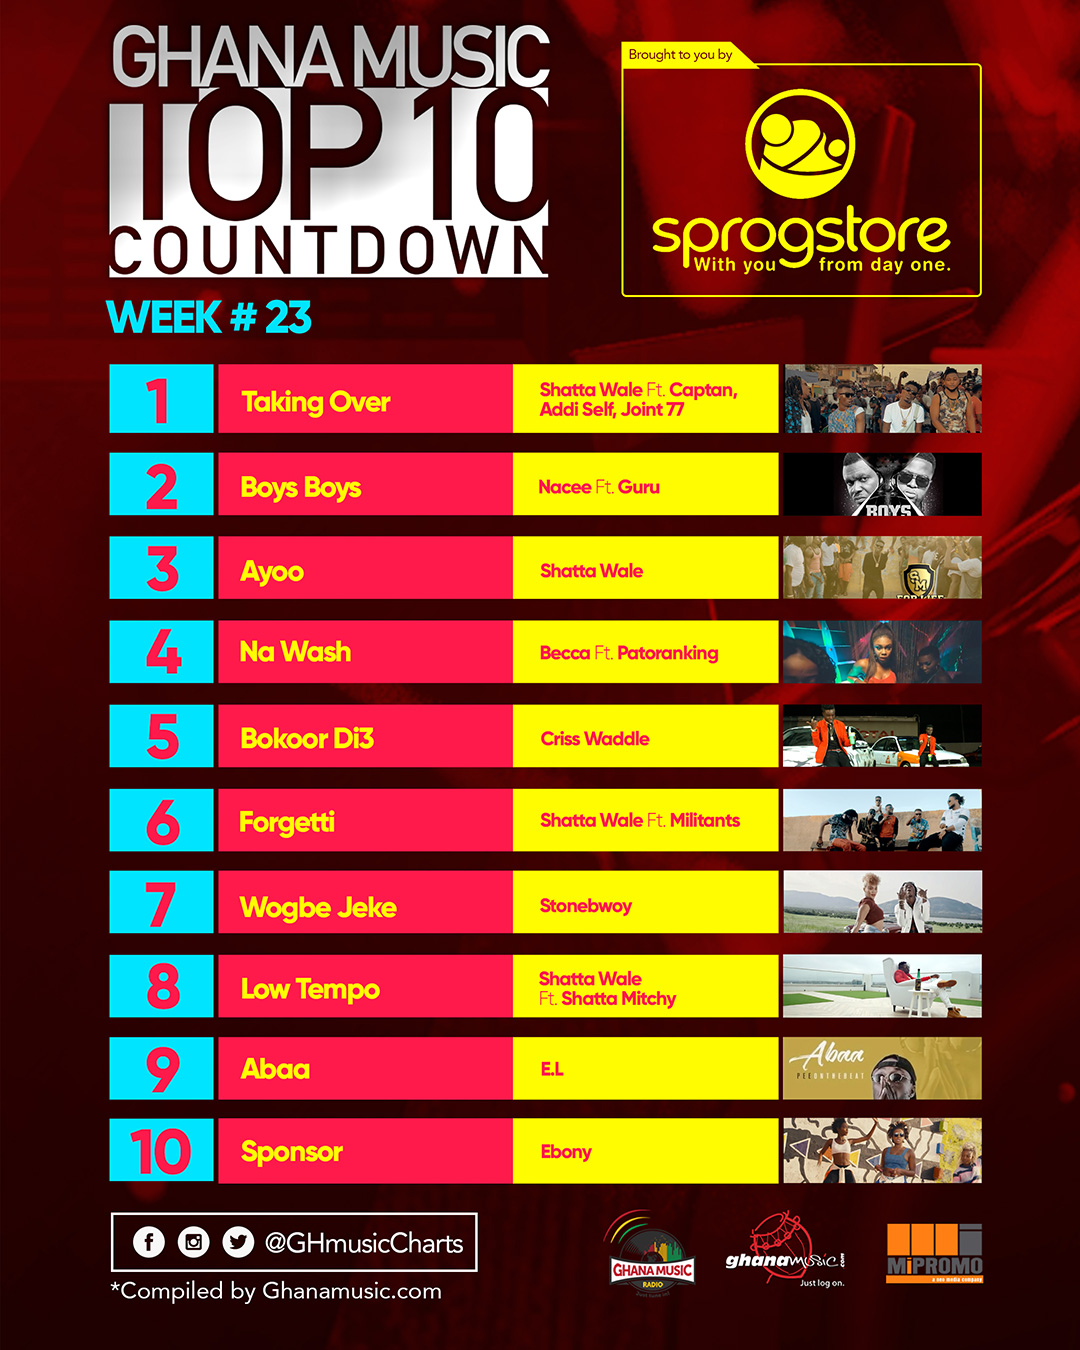 Week #23: Week ending Saturday, June 10th, 2017. Ghana Music Top 10 Countdown.